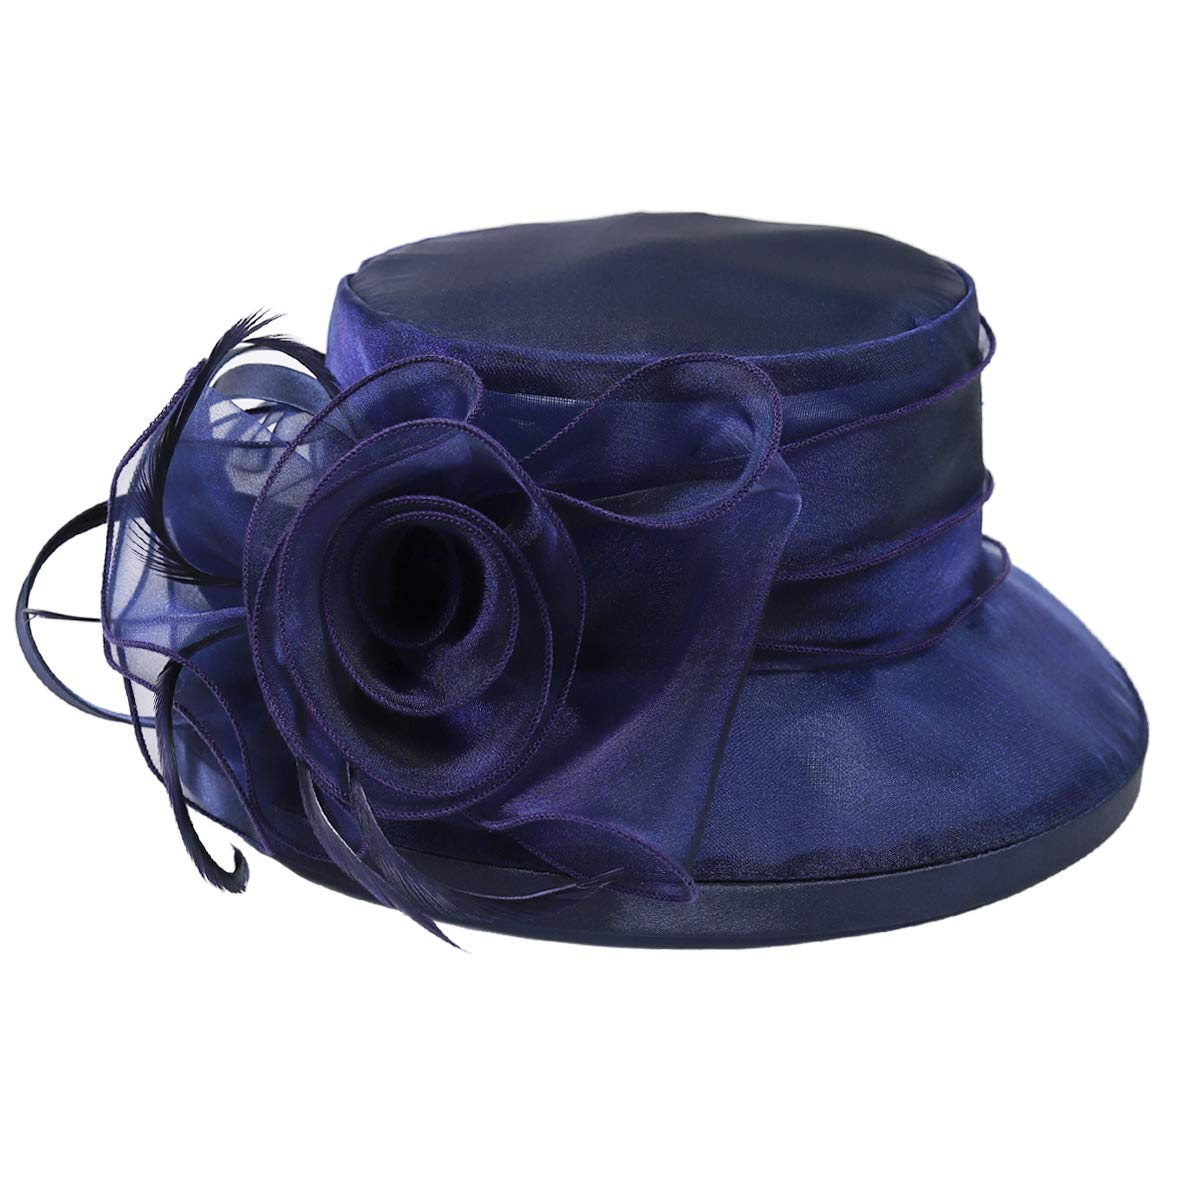 Lady Church Derby Dress Cloche Hat Fascinator Floral Tea Party Wedding Bucket Hat S051 (S043-Navy) by Ruphedy (Image #3)